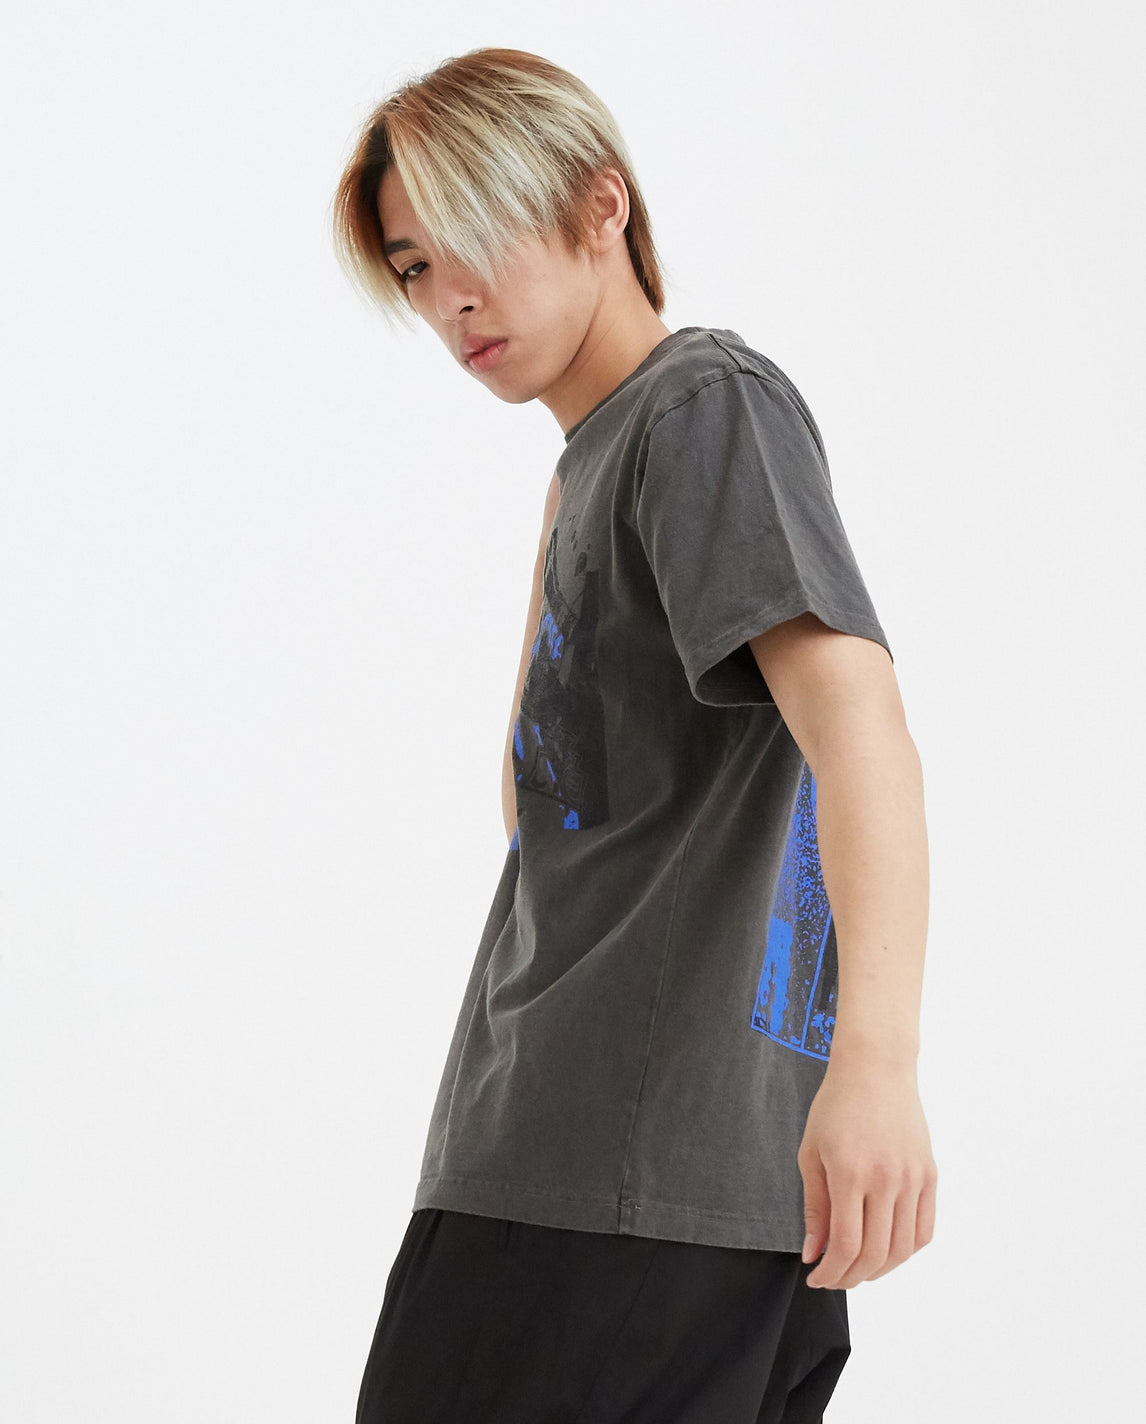 Over-dye Irrational Knowledge T-Shirt - Grey UNISEX CAV EMPT